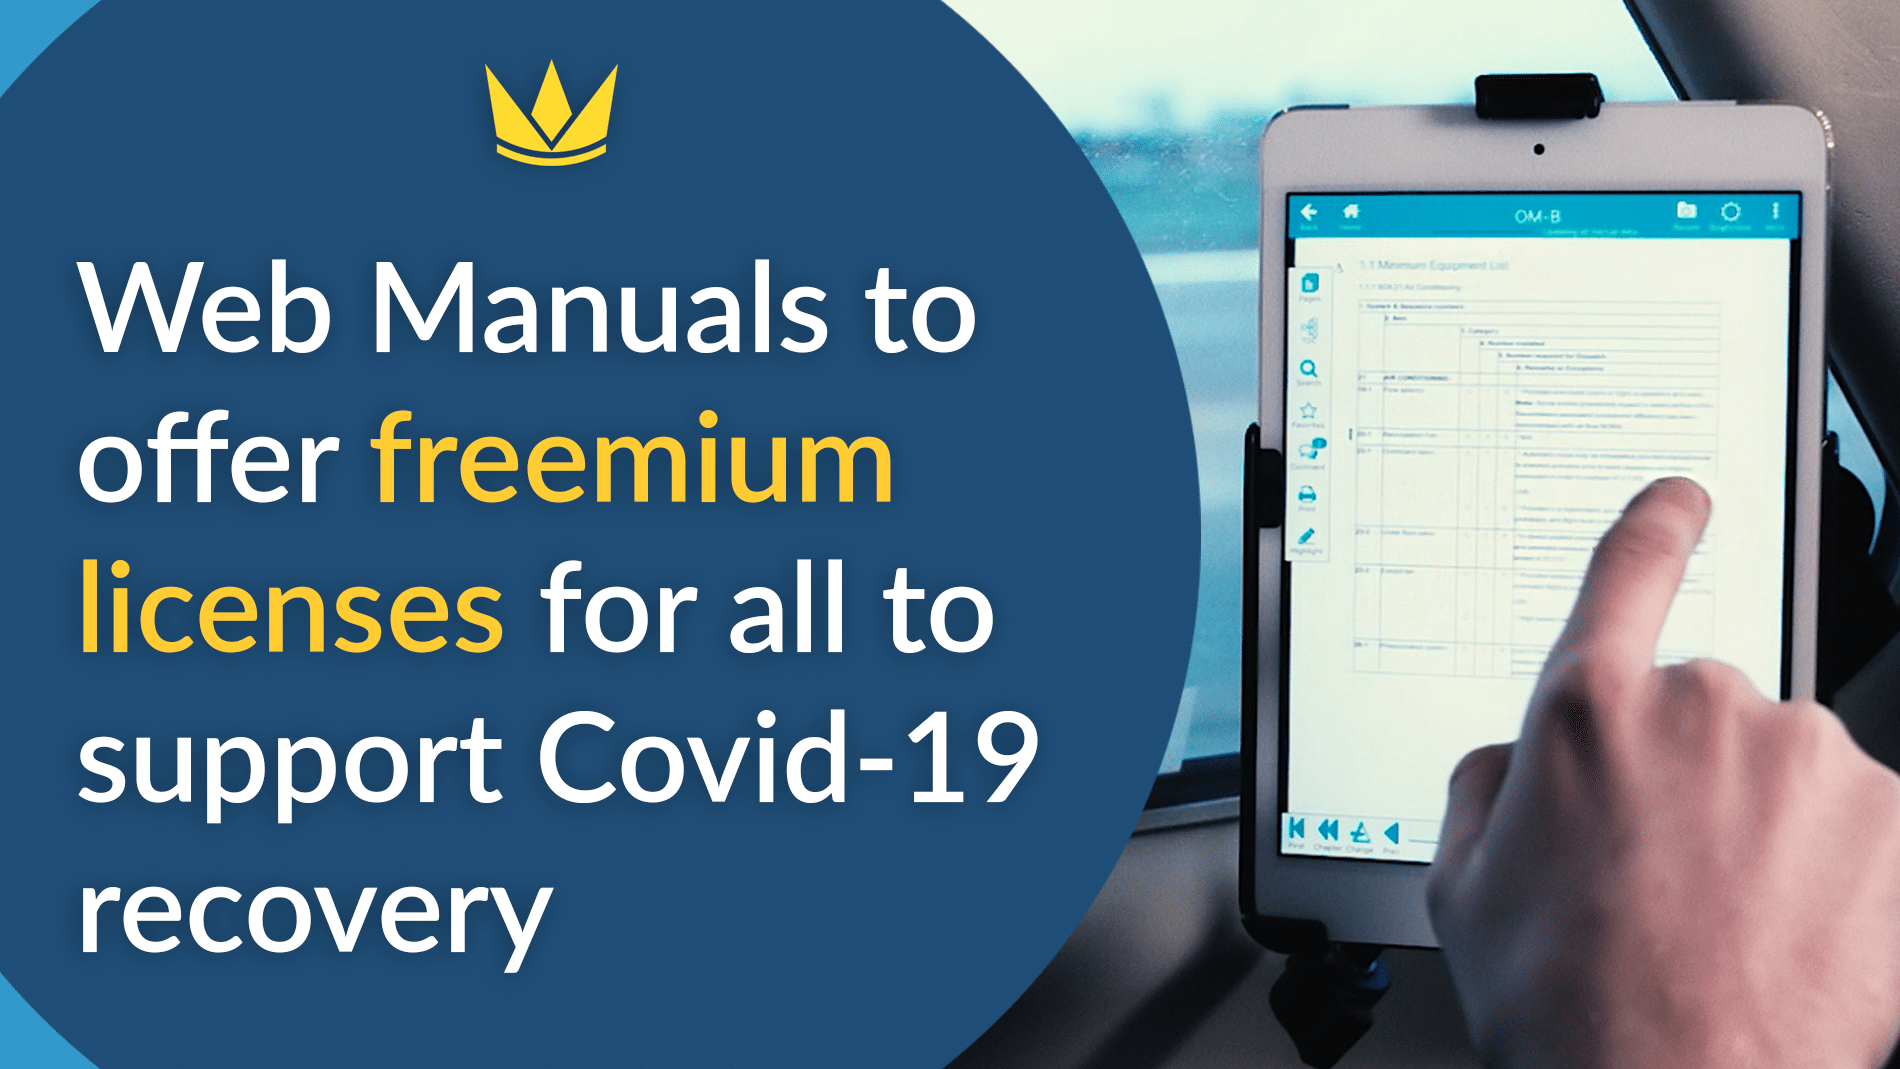 Web Manuals to offer freemium licenses for all to support Covid-19 recovery